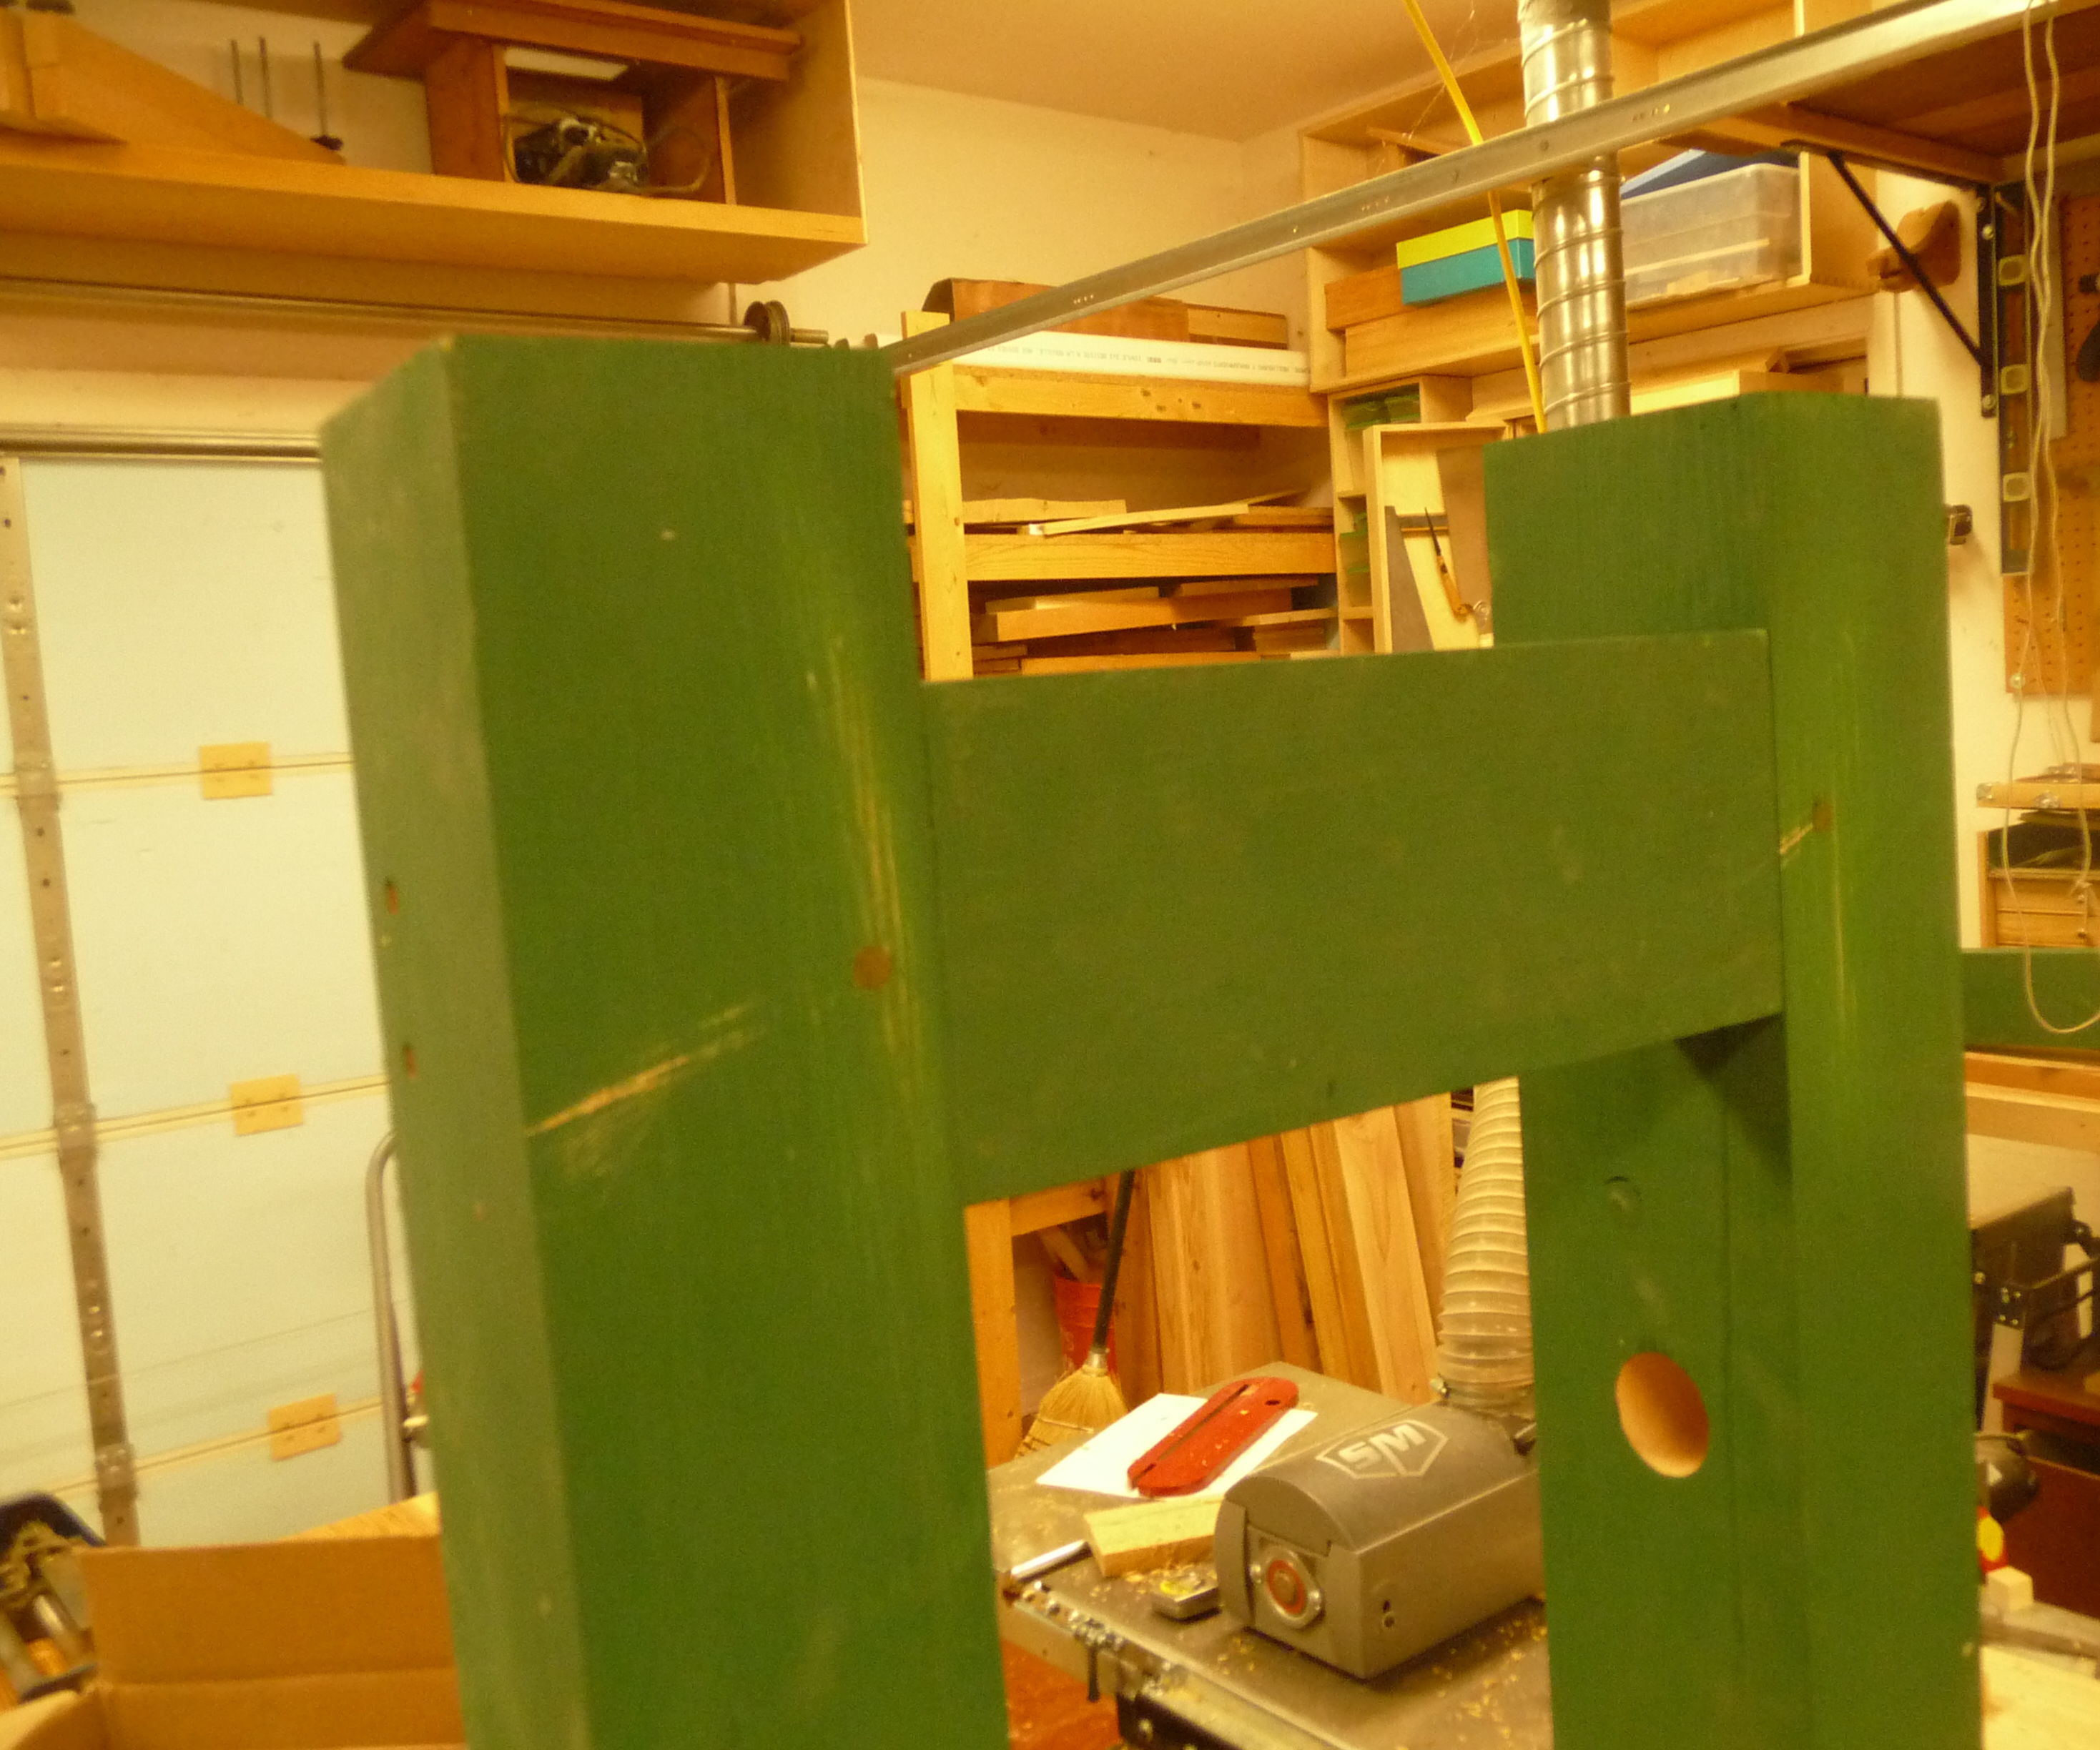 Drawboring Makes for Rugged Mortise and Tenon Joints